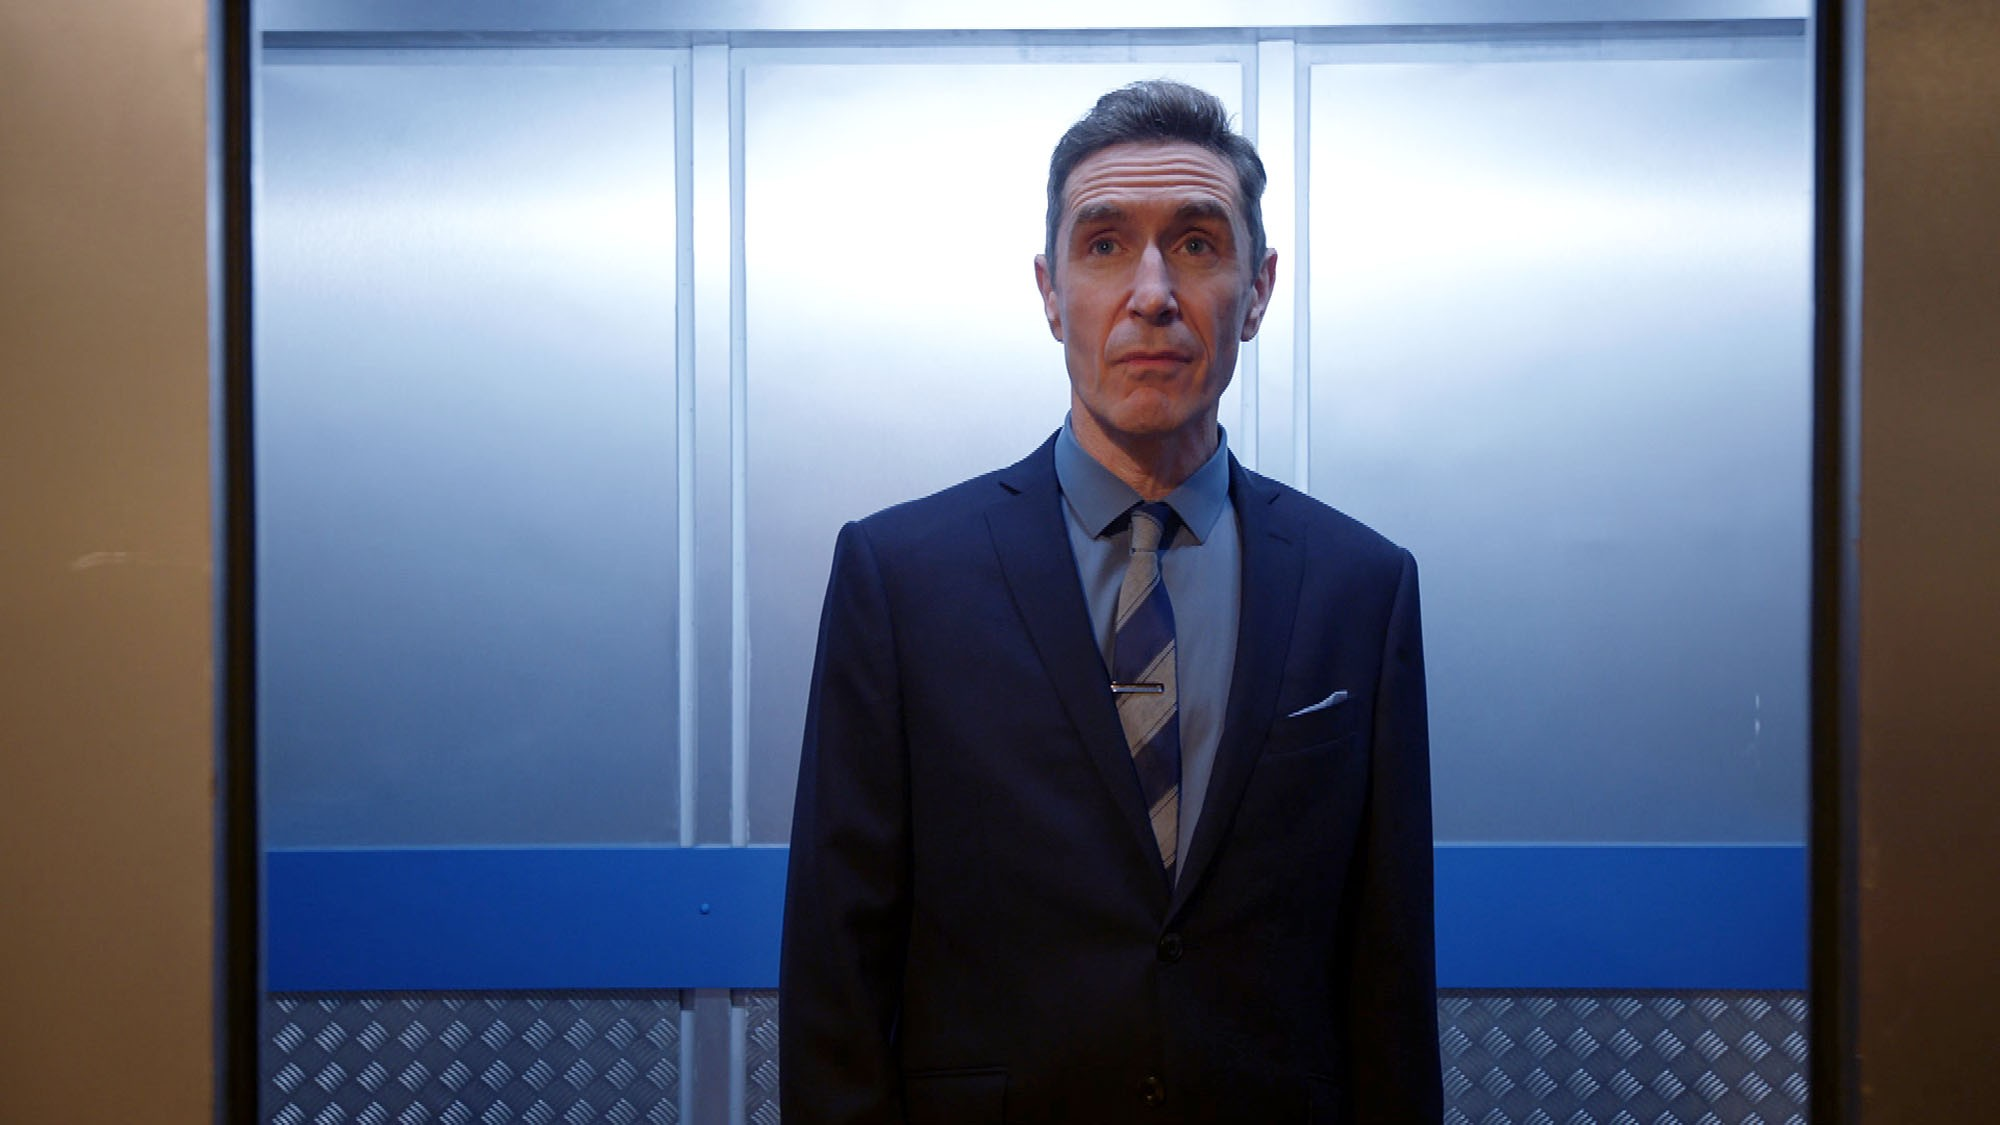 WARNING: Embargoed for publication until 00:00:01 on 28/11/2017 - Programme Name: Holby City  - TX: 05/12/2017 - Episode: Holby City - Series 19, ep 61 (No. n/a) - Picture Shows: *STRICTLY NOT FOR PUBLICATION UNTIL 00:01HRS, TUESDAY 28TH NOVEMBER, 2017* Professor John Gaskell (PAUL McGANN) - (C) BBC  - Photographer: Screengrab